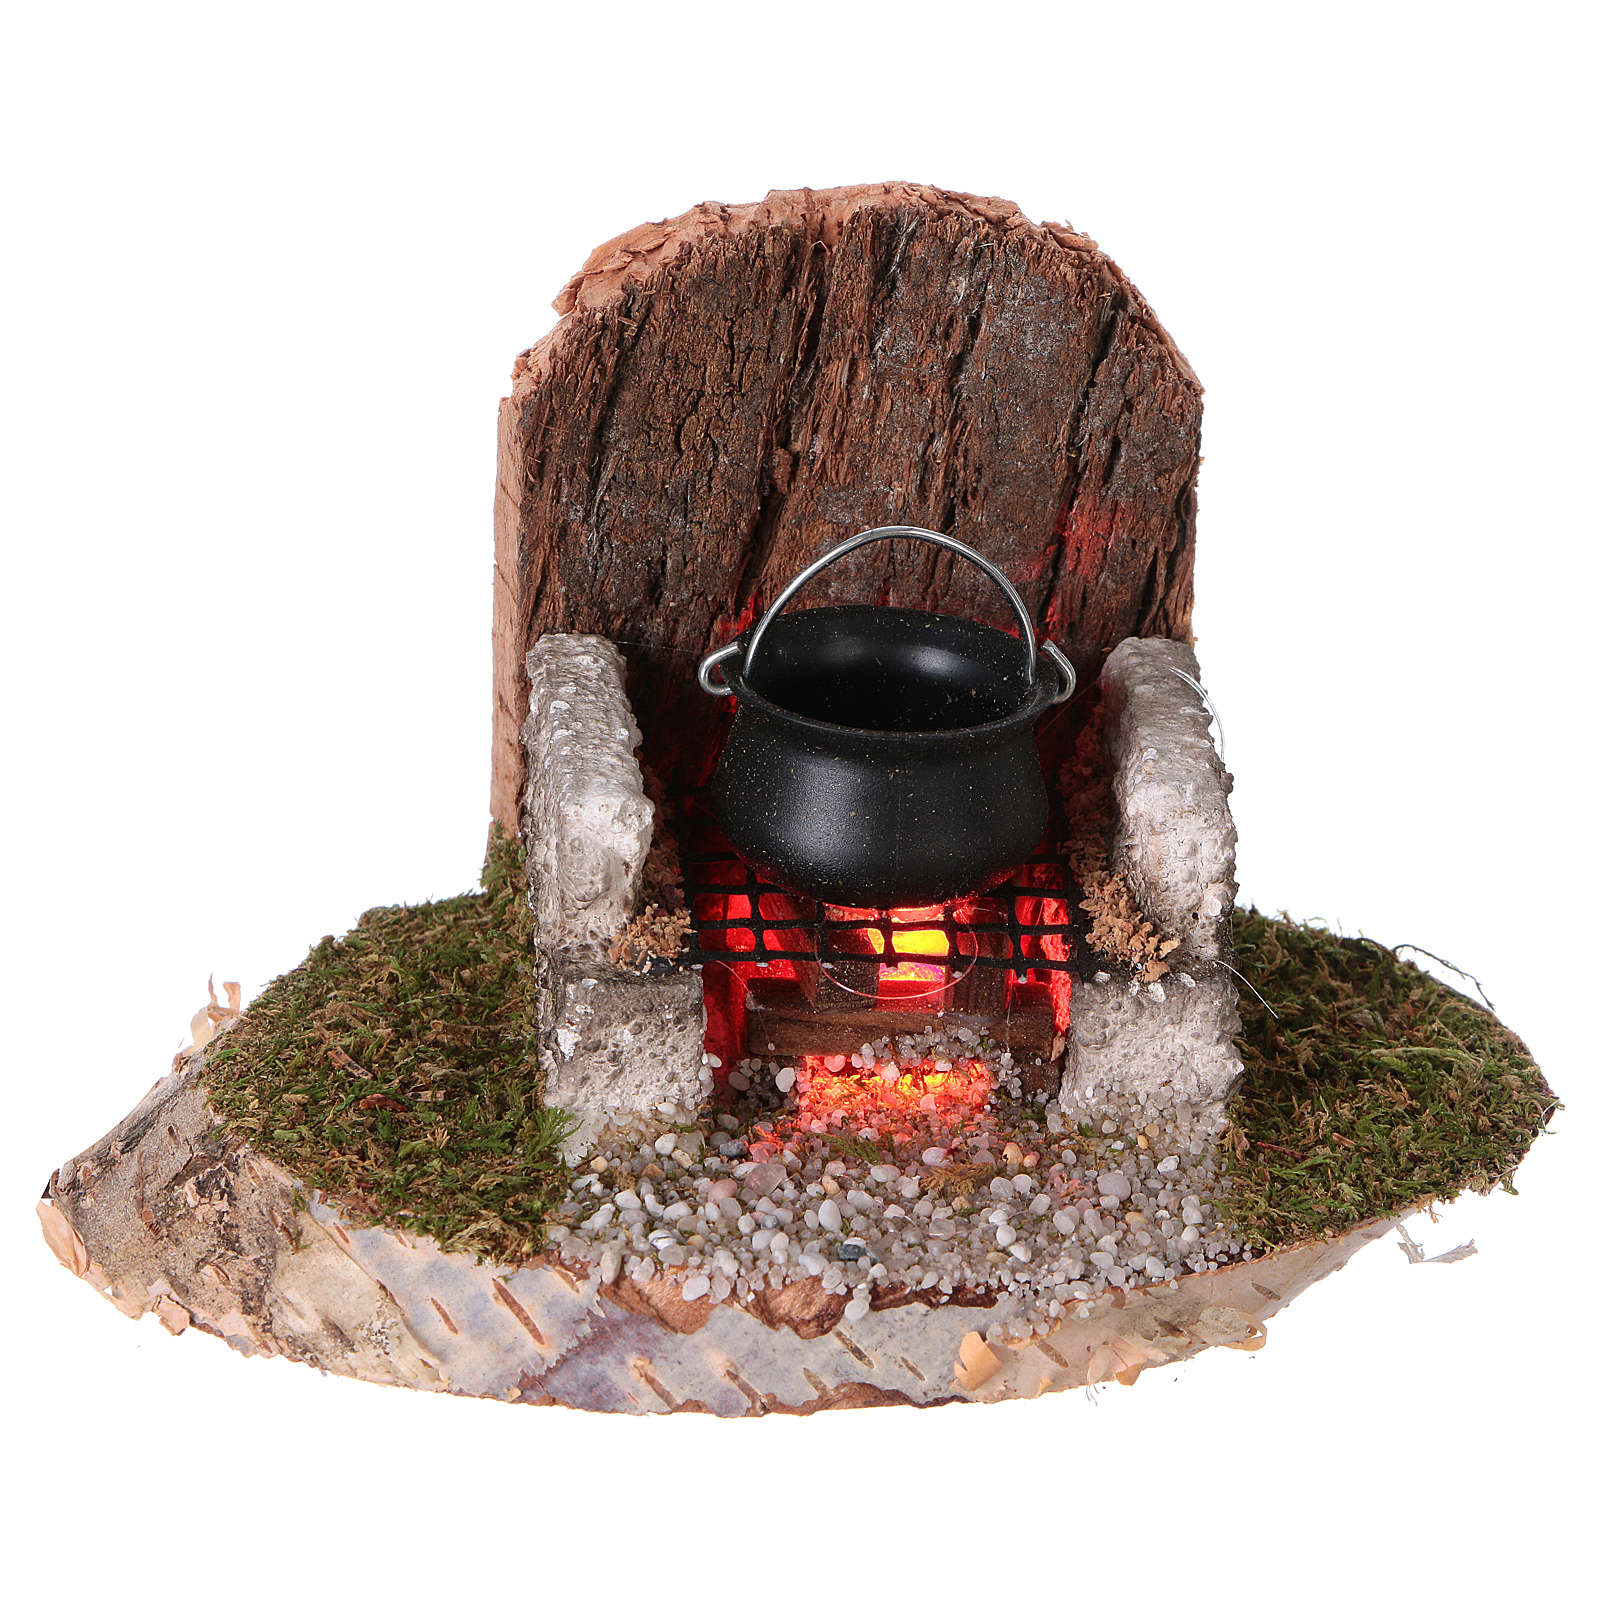 Pot on a fire with flickering light 6x8x6 cm for 8-10cm Nativity Scenes 4